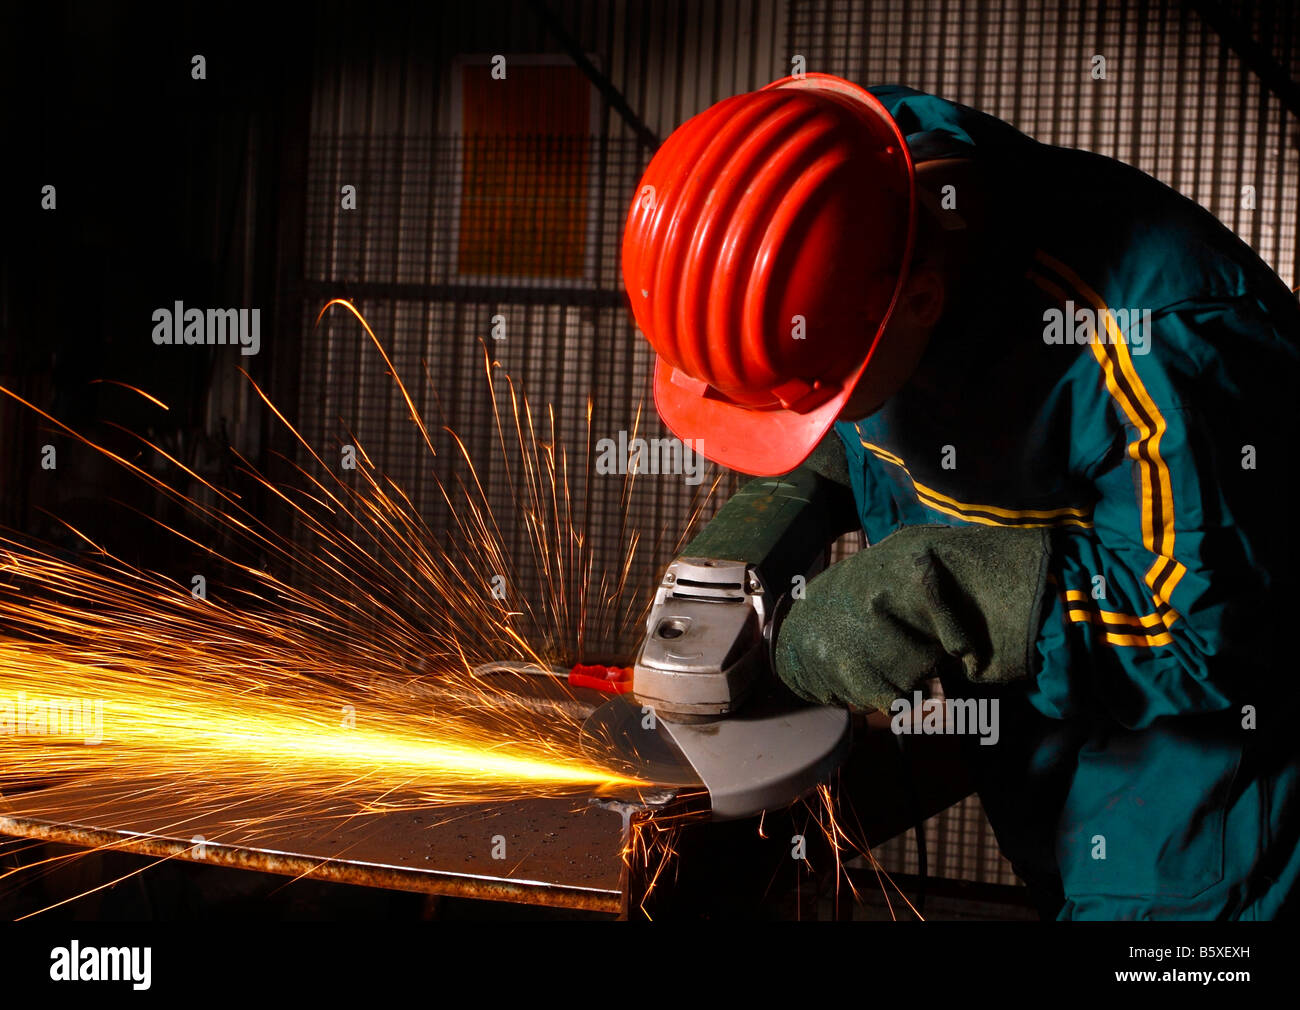 heavy industry manual worker with grinder - Stock Image